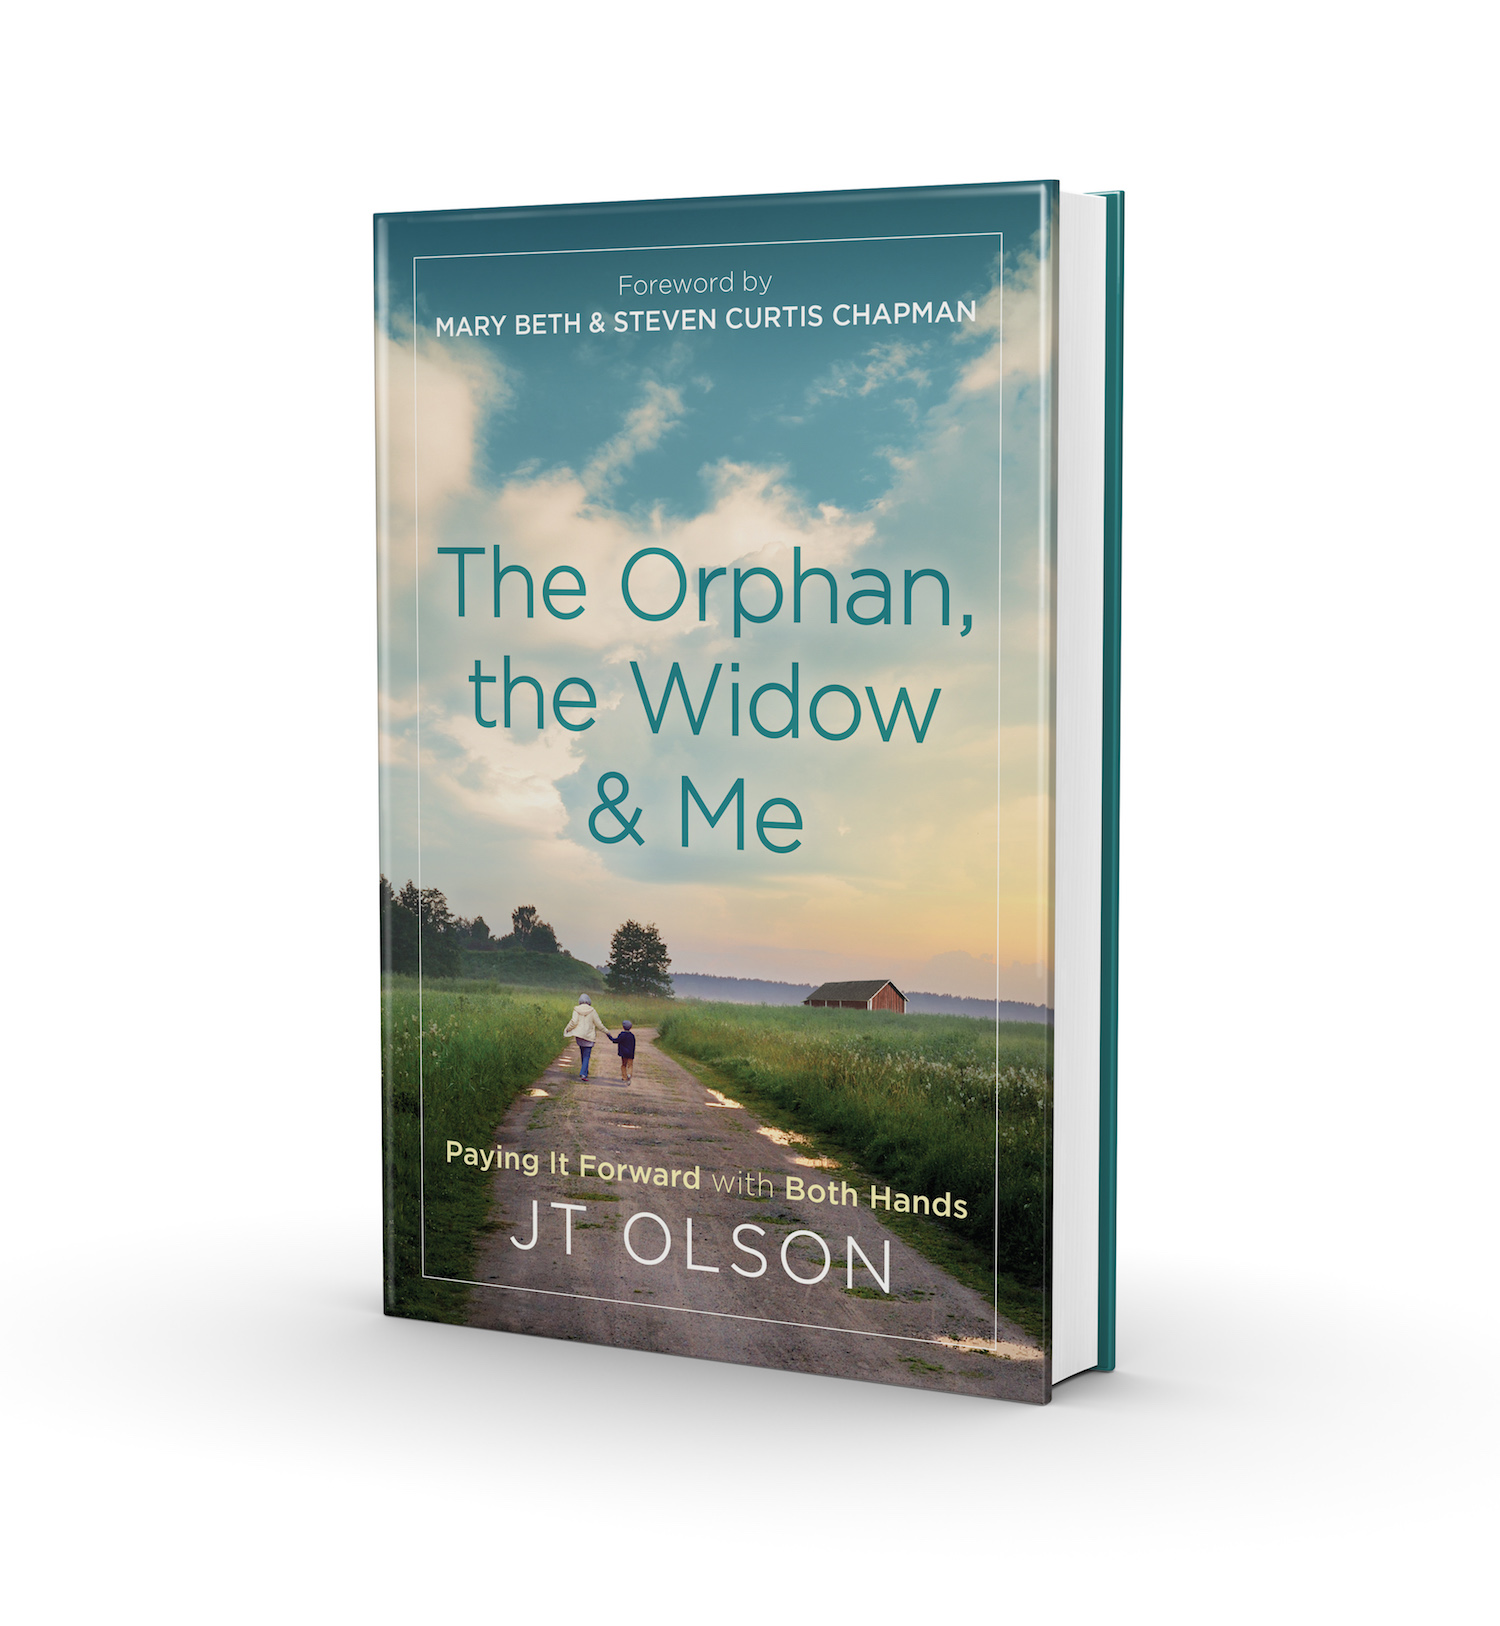 The Orphan, the Widow & Me